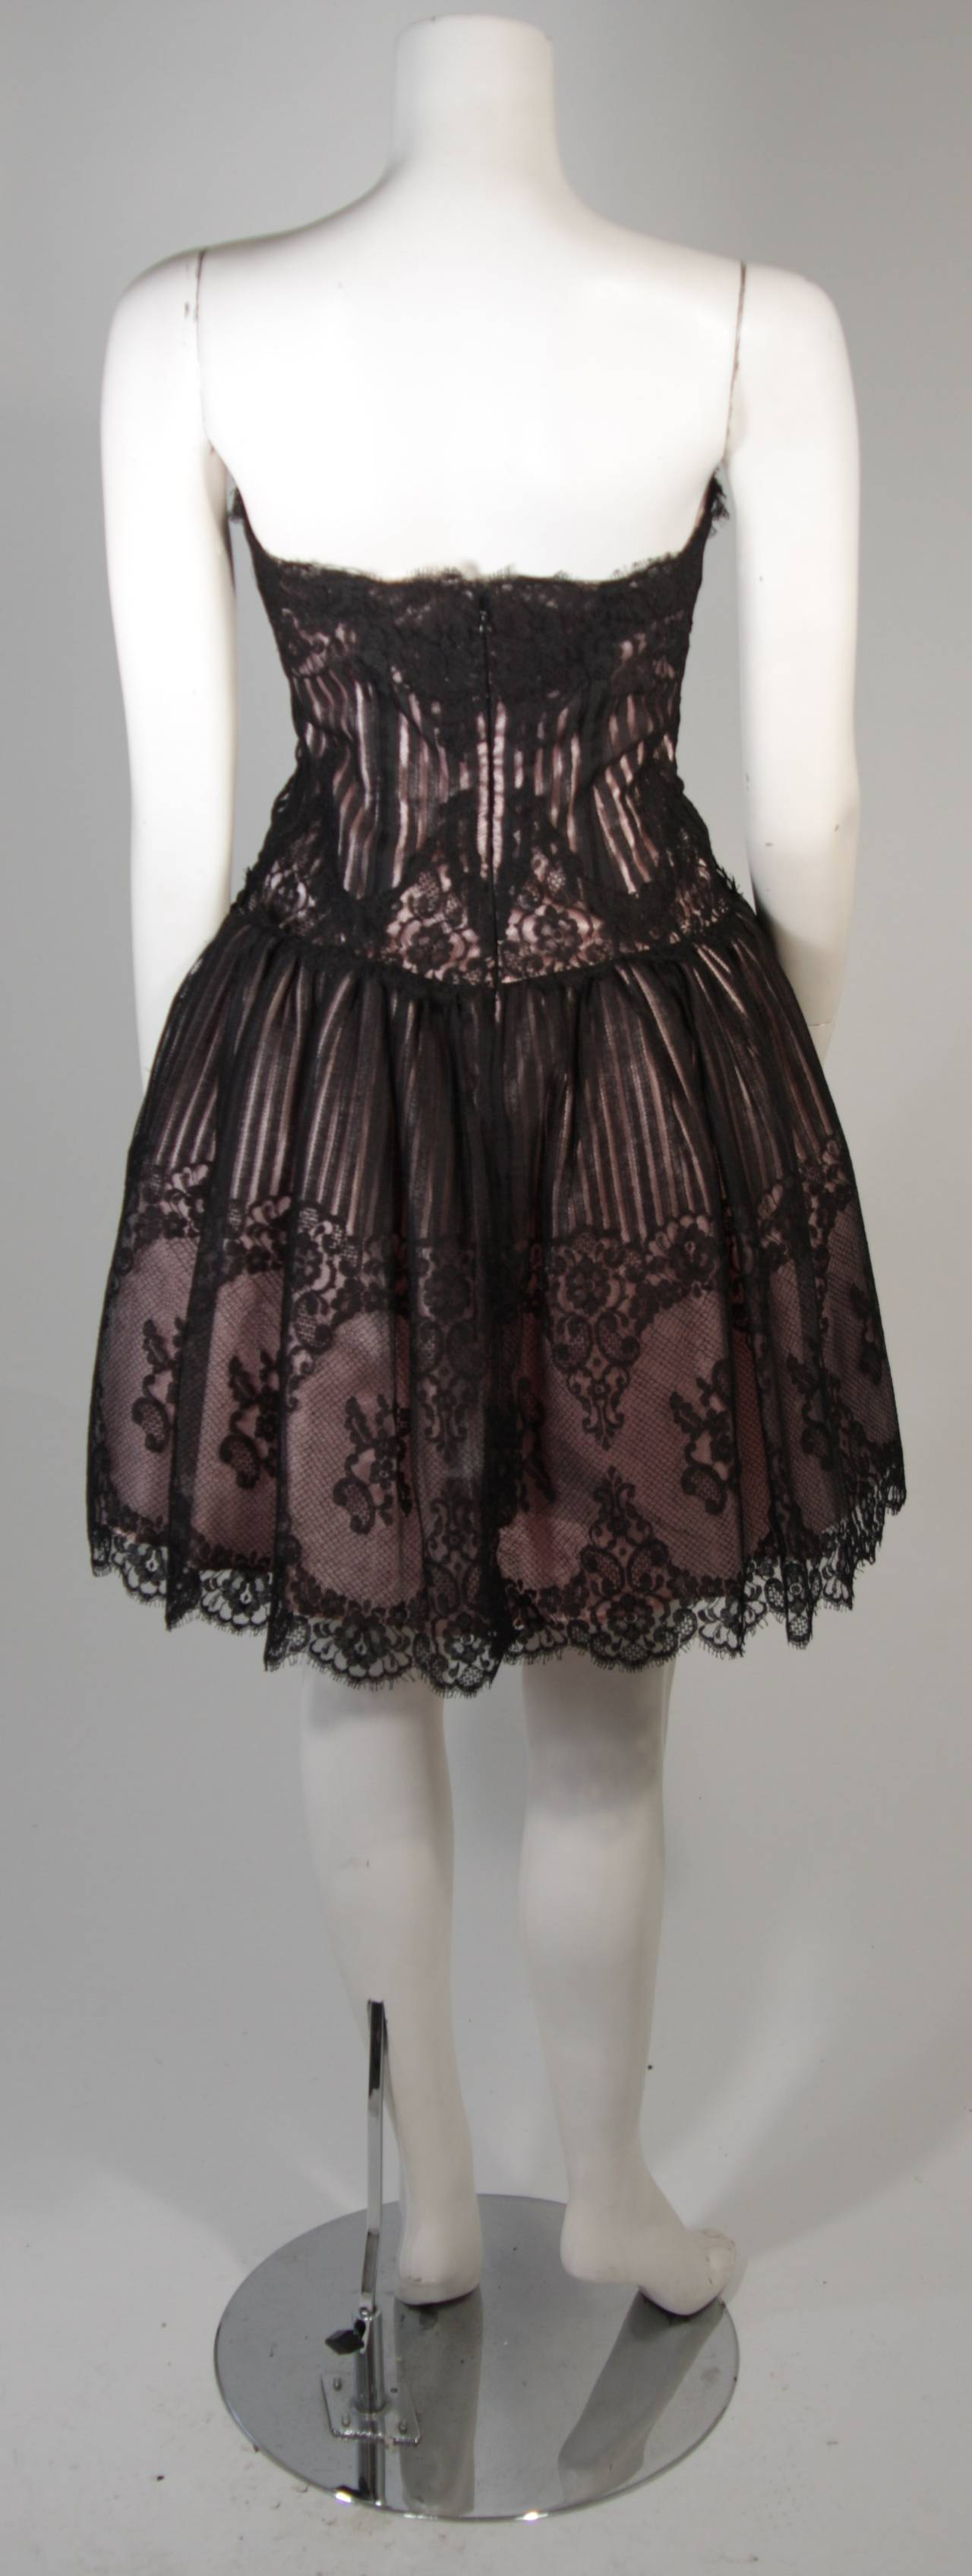 Victor Costa Strapless Black Lace Cocktail Dress with Pink Satin Size 40 6